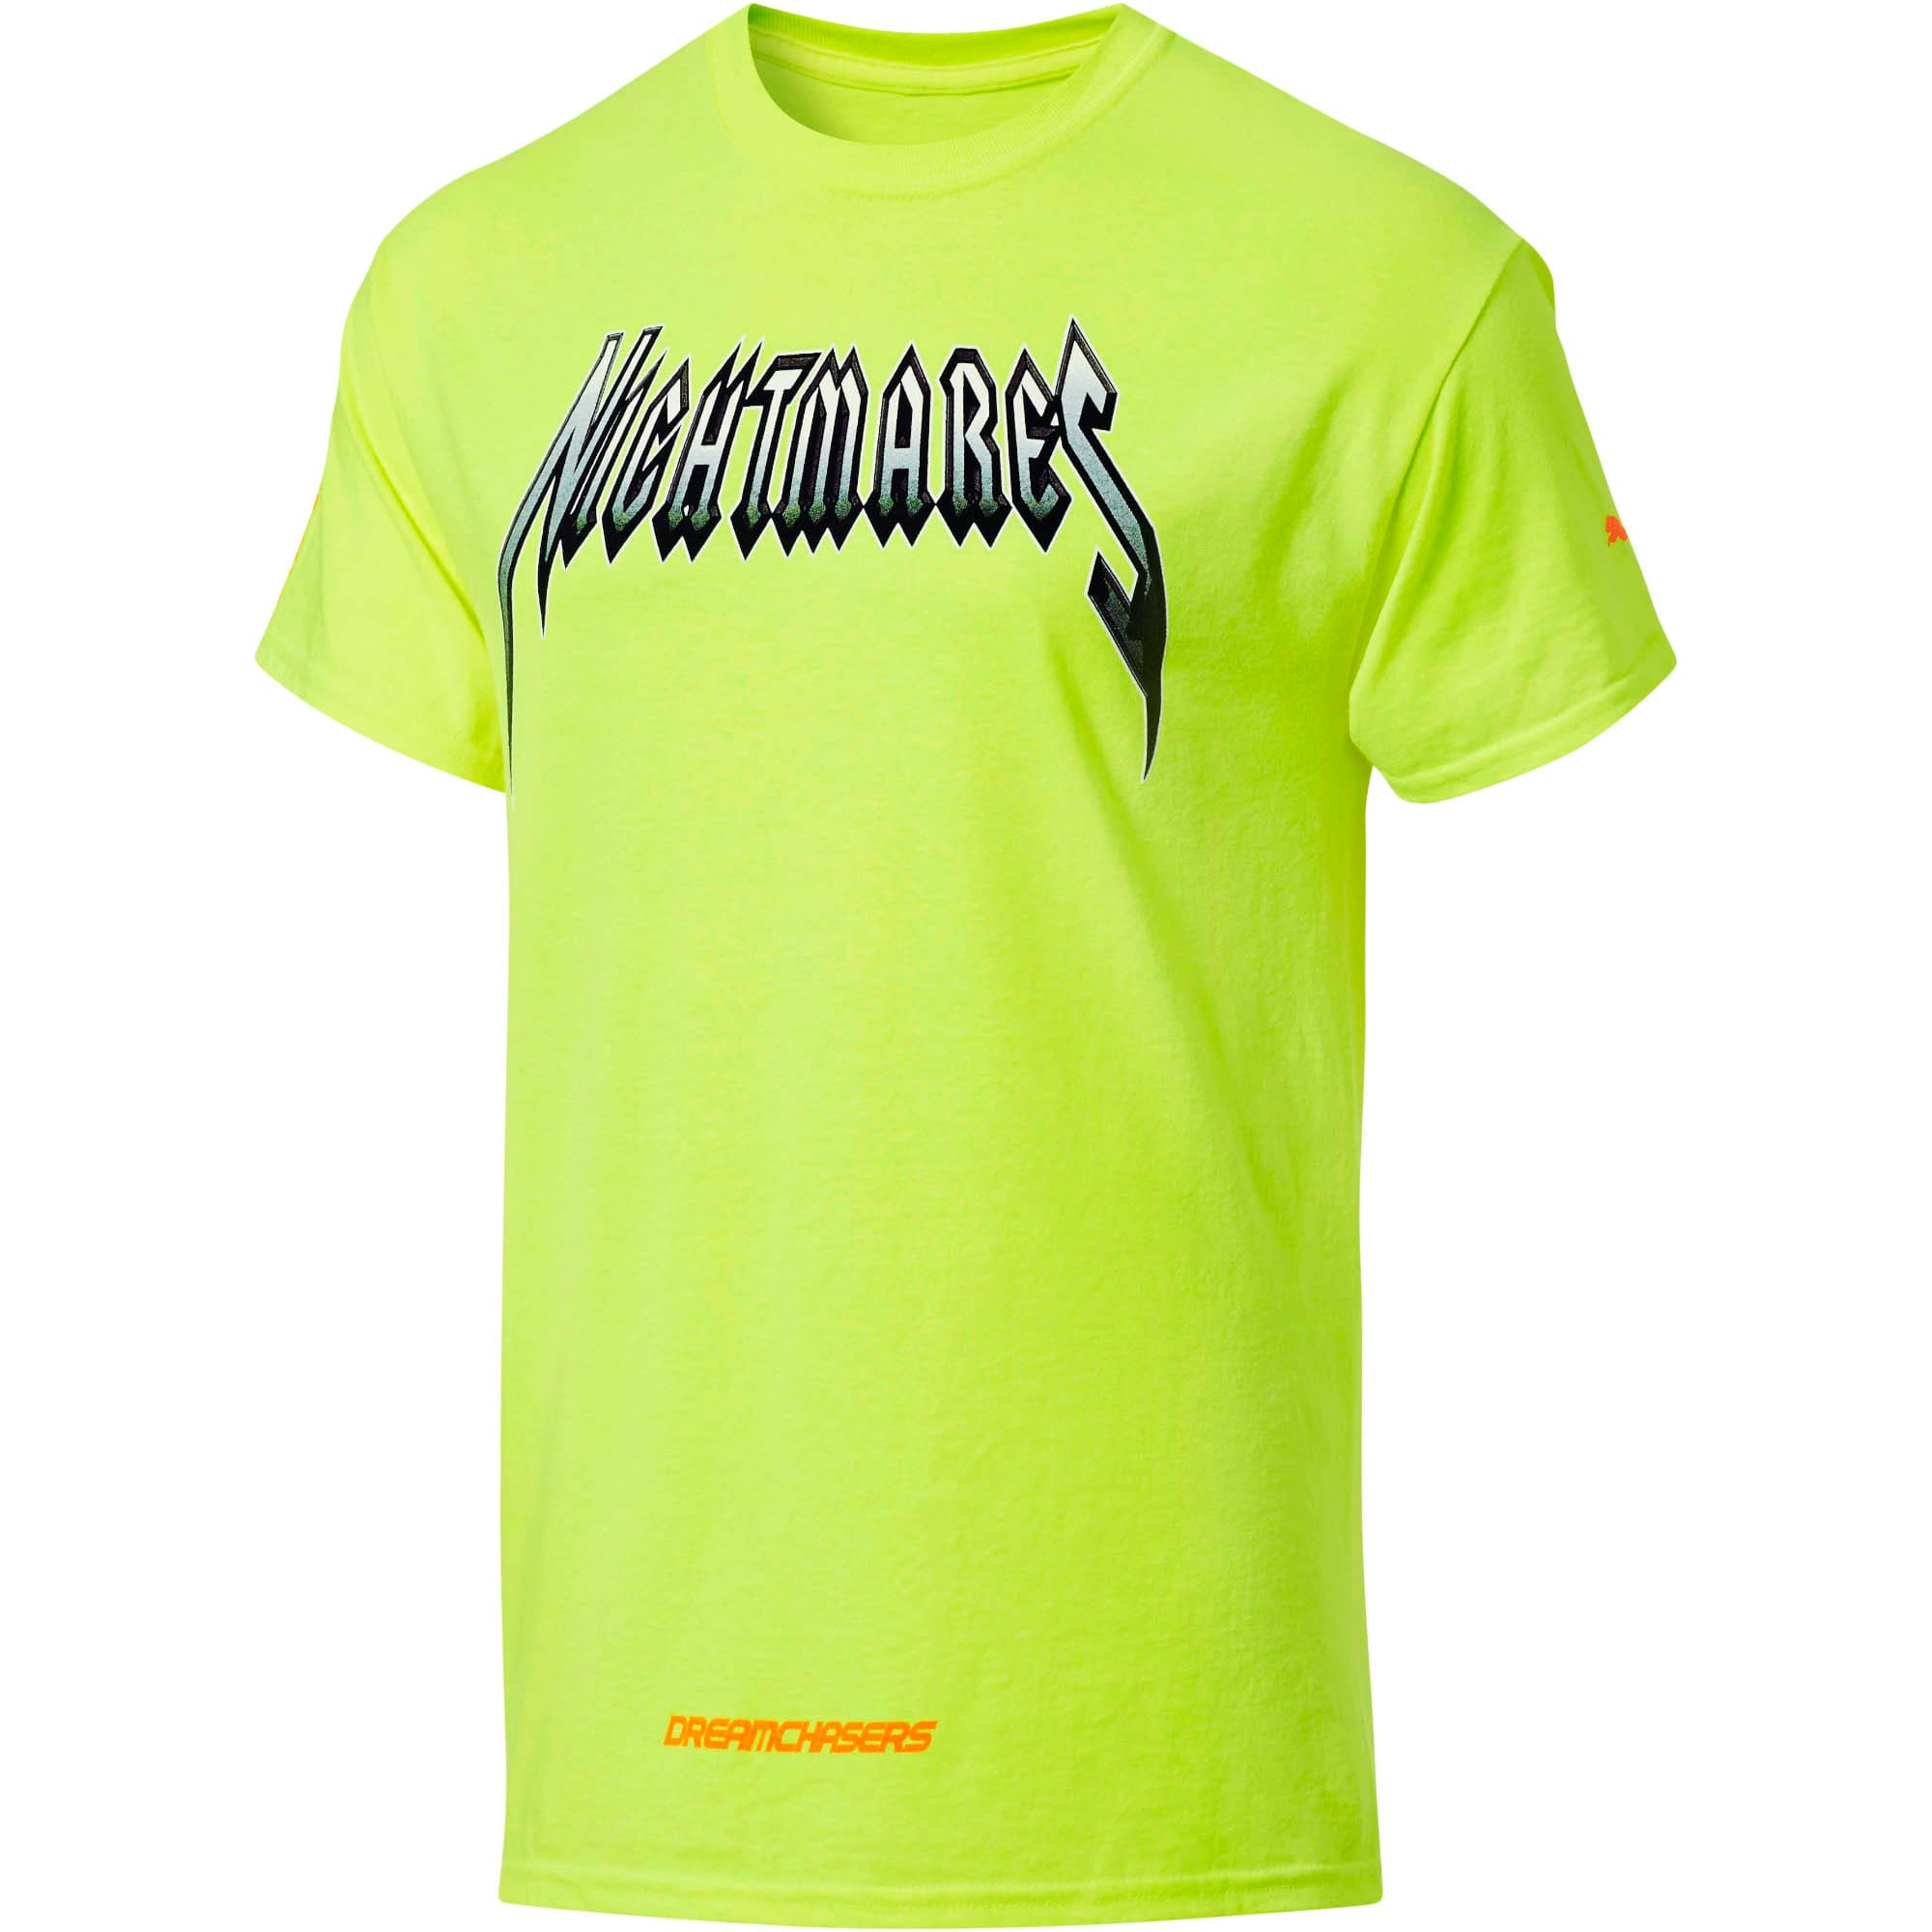 PUMA x DCMX Nightmares Tee, Safety Green, large